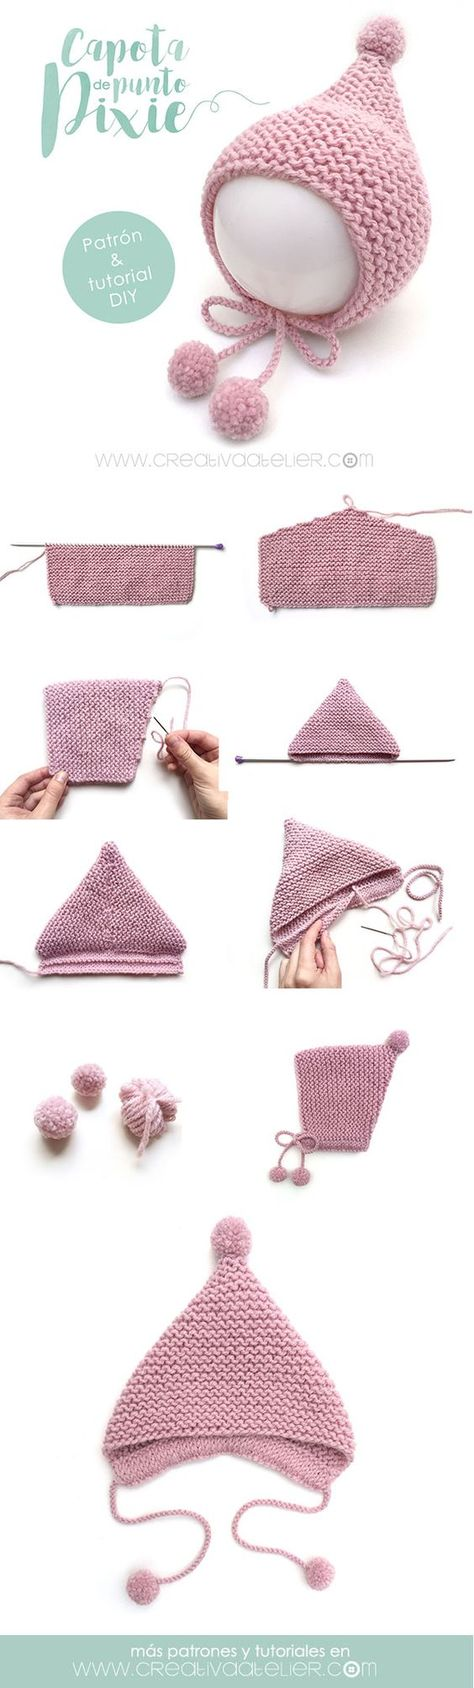 76 best gorros images on Pinterest | Beanies, Crochet baby and ...